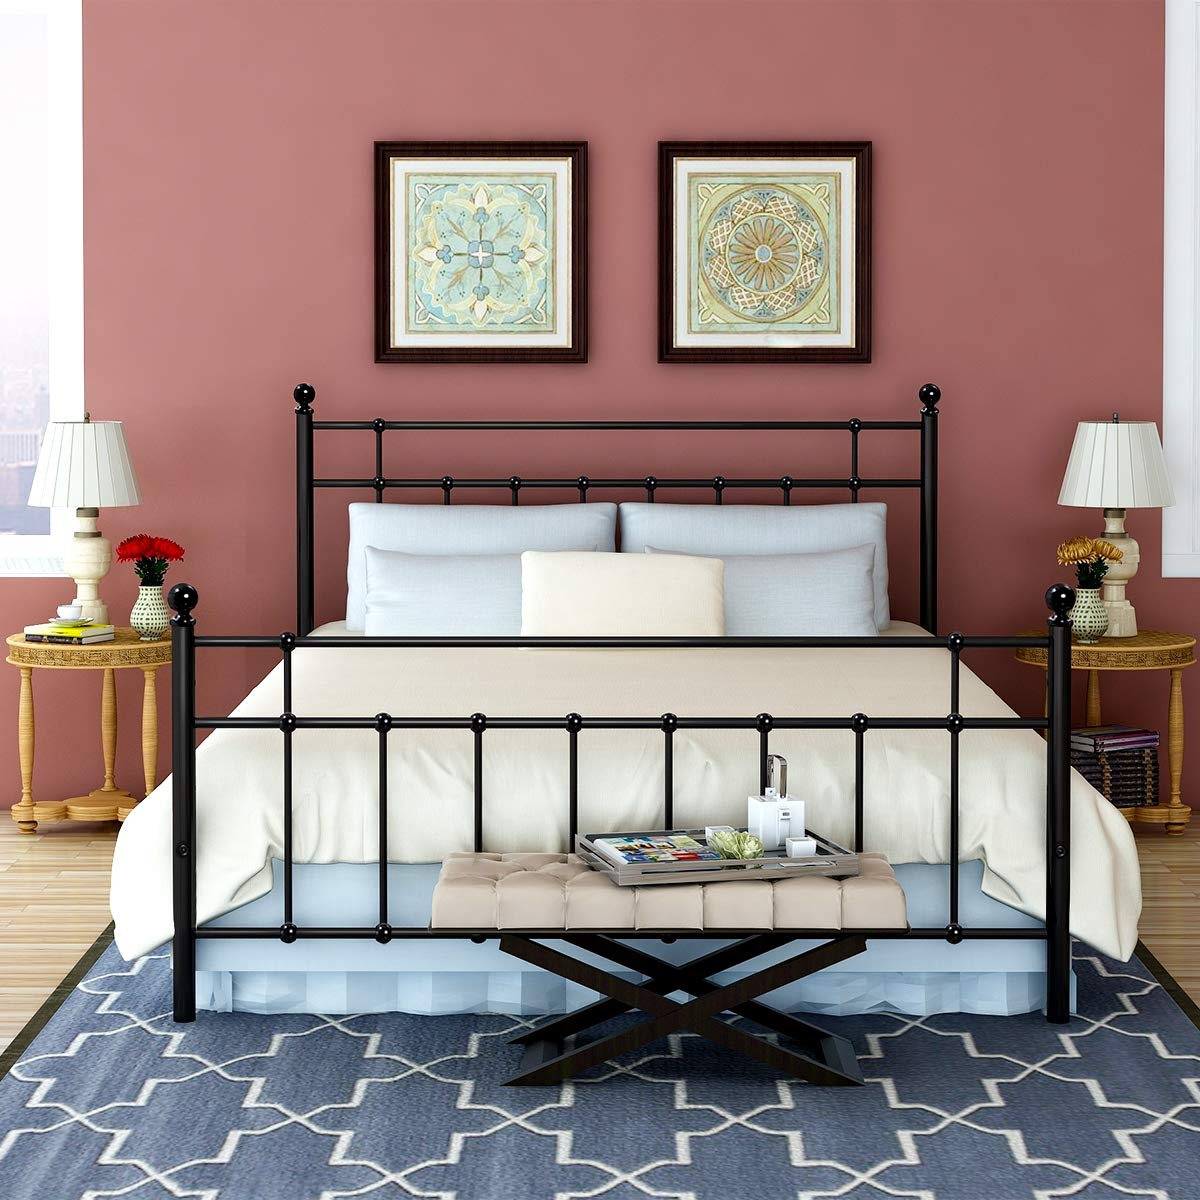 Buff Home Metal Bed Platform Frame with Steel Headboard and Footboard Mattress Foundation Bedroom Furniture Box Spring Replacement for Kids Adults Victorian Style Black Queen Size